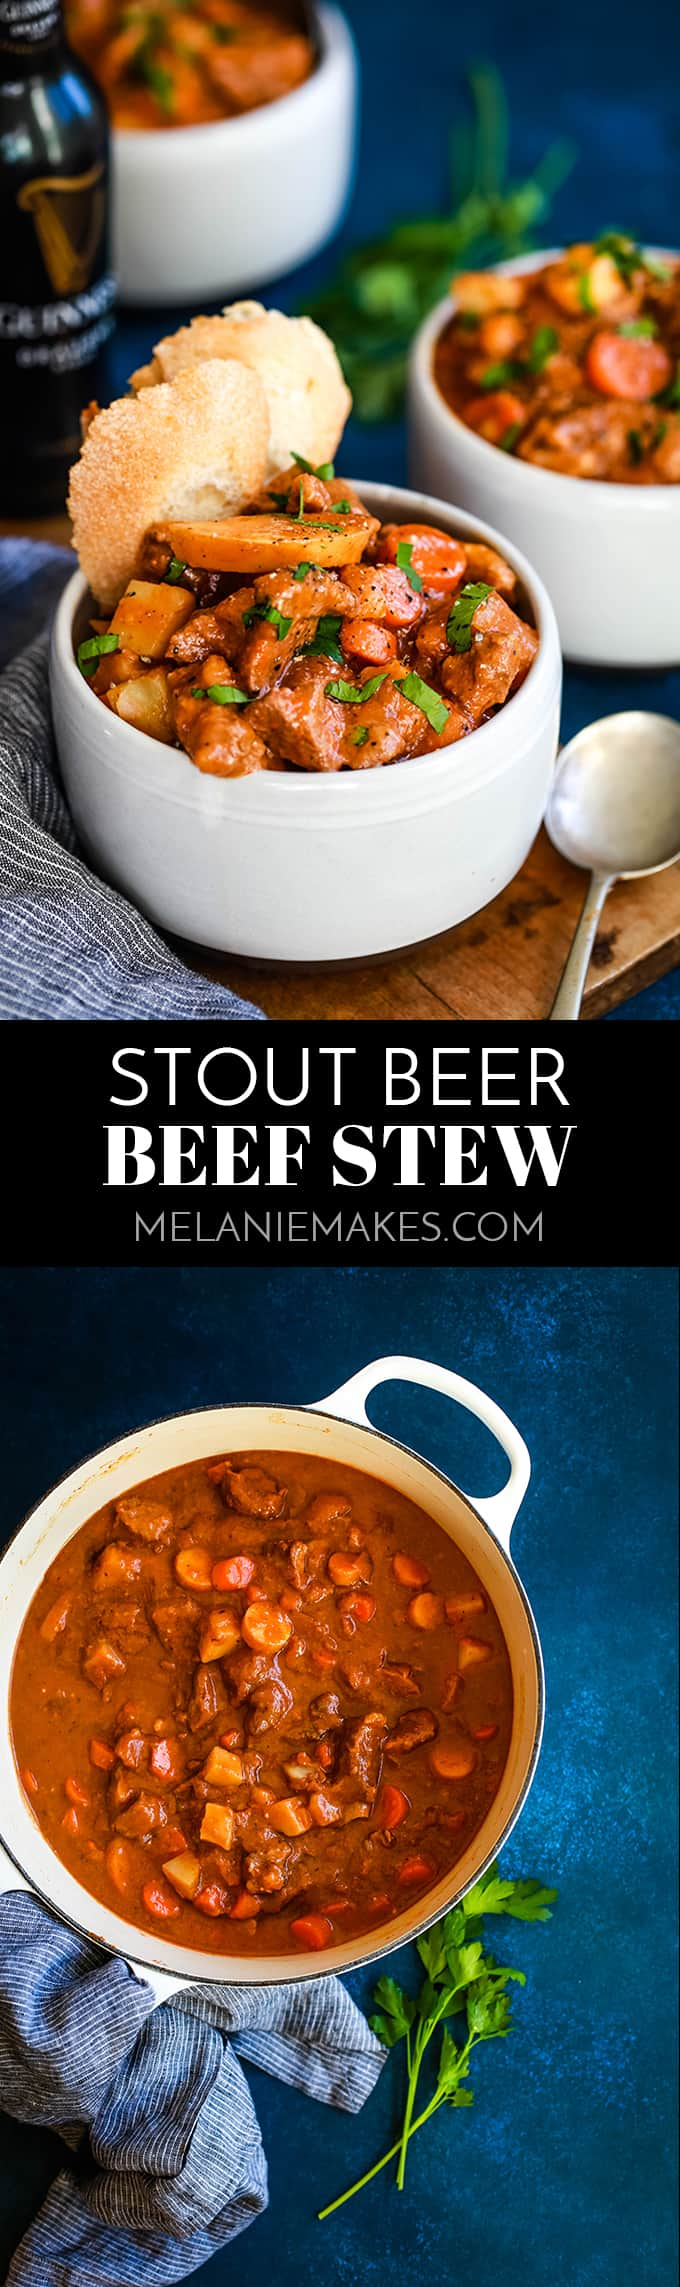 The perfect bowl of comfort to see you through a never ending winter, this Stout Beer Beef Stew will leave your belly full and your taste buds happy. #beer #beeffoodrecipes #beef #stew #soup #comfortfood #easyrecipe